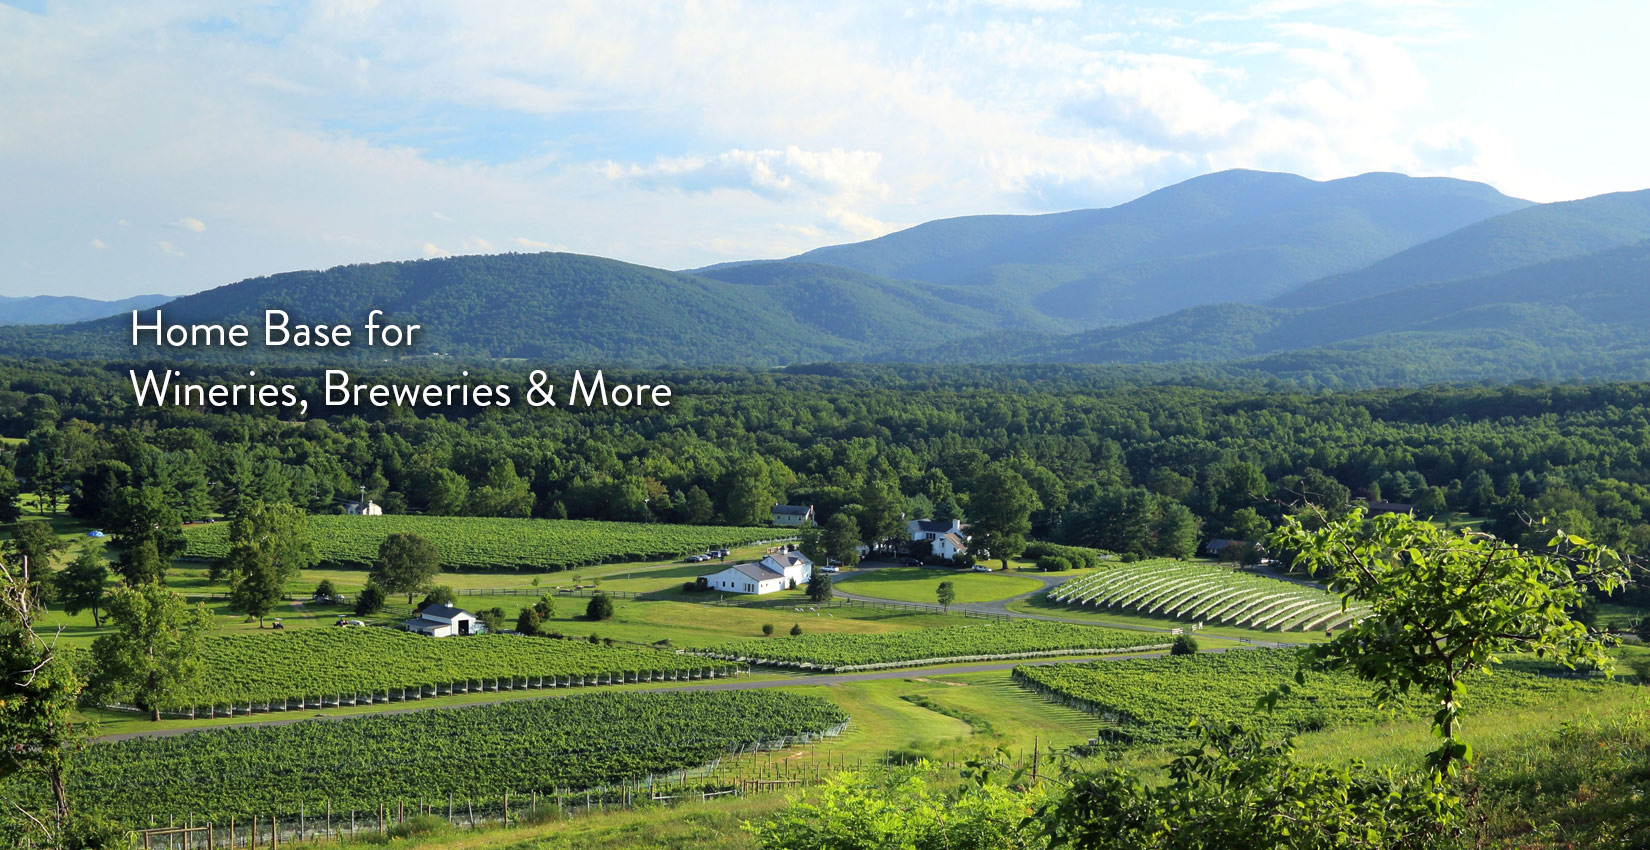 wintergreen is your home base for wineries, breweries, cideries